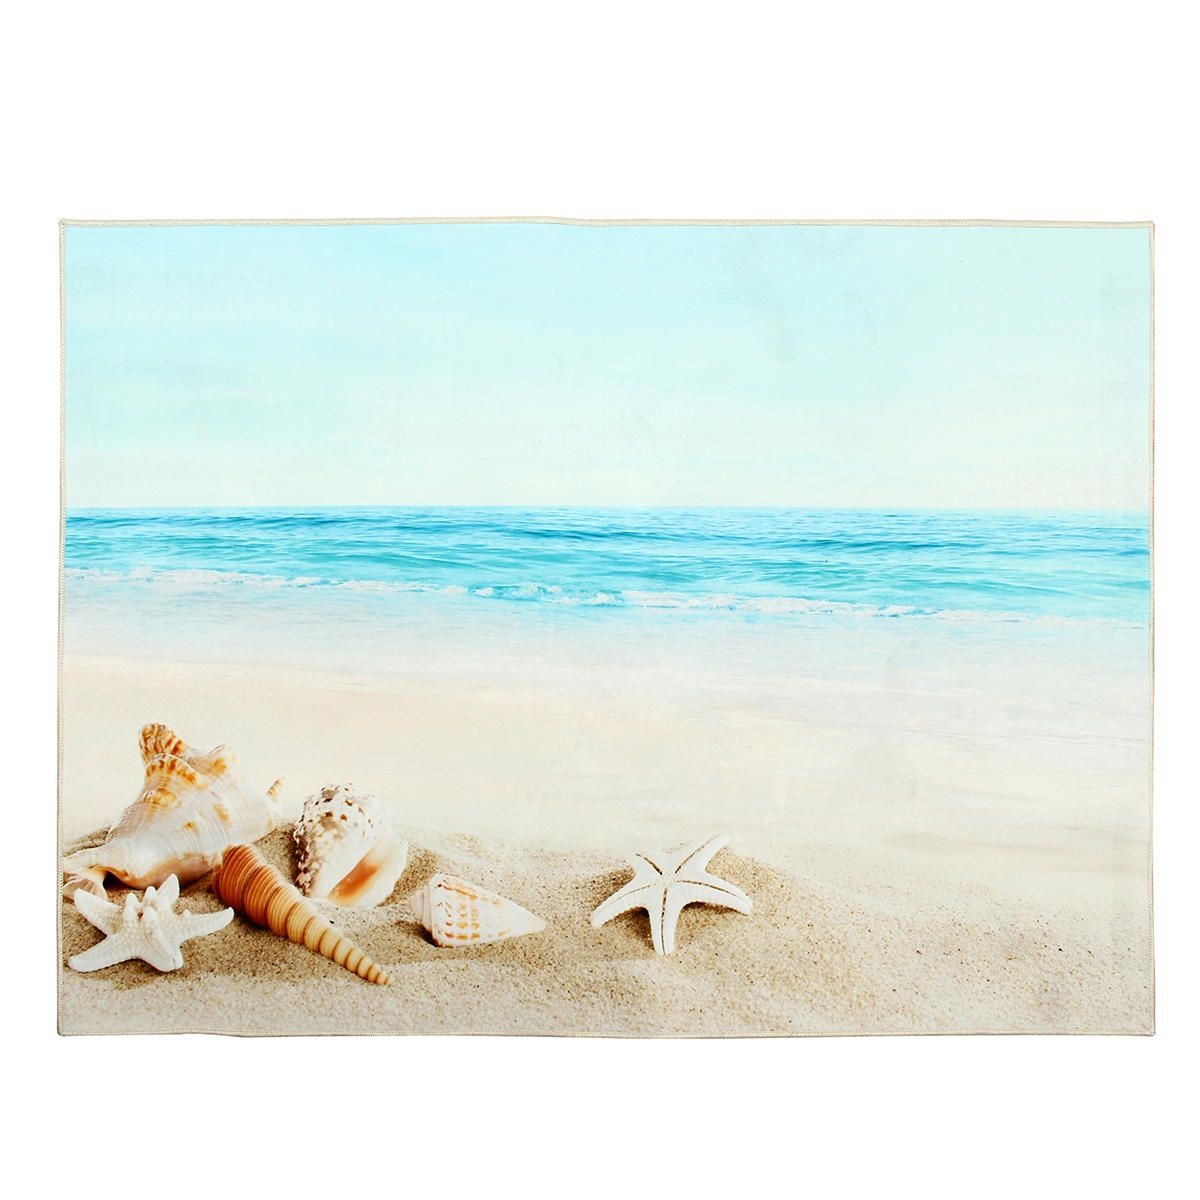 EZL US$56.54~61.54 Beach Modern Area Floor Rug Carpet For Bedroom Living Room Mat Home Decoration